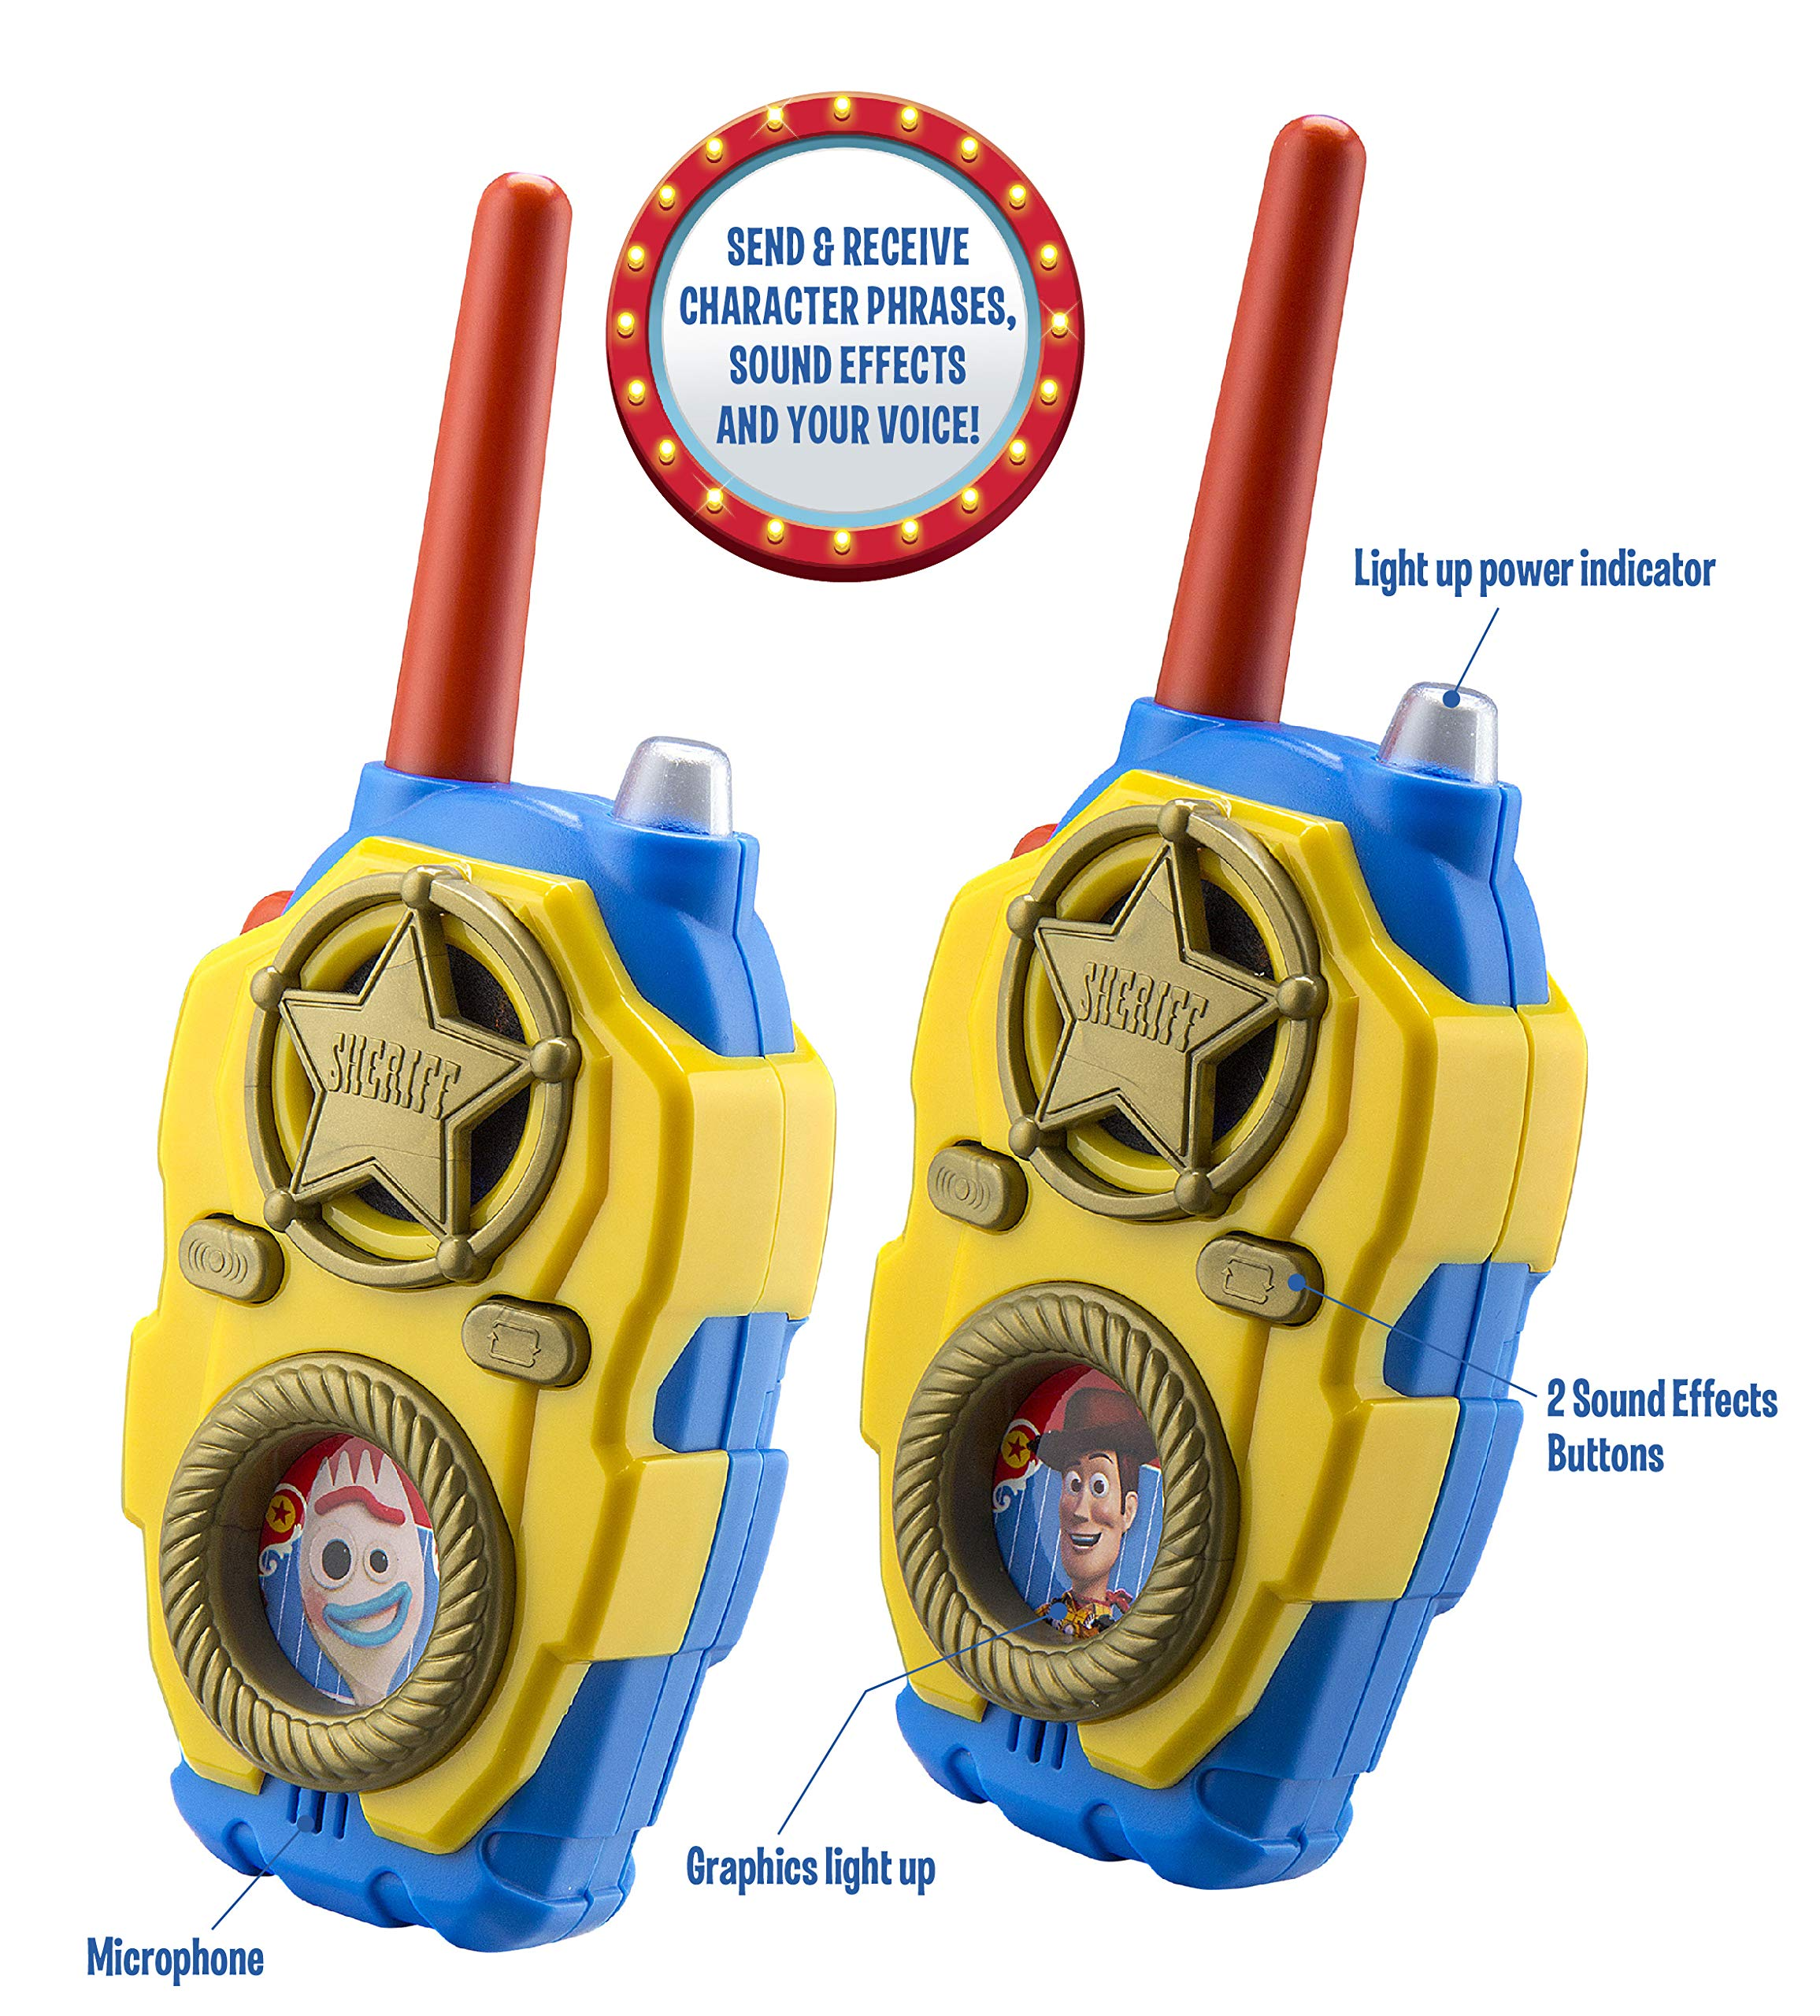 eKids Toy Story 4 FRS Walkie Talkies with Lights and Sounds Kid Friendly Easy to Use by eKids (Image #2)